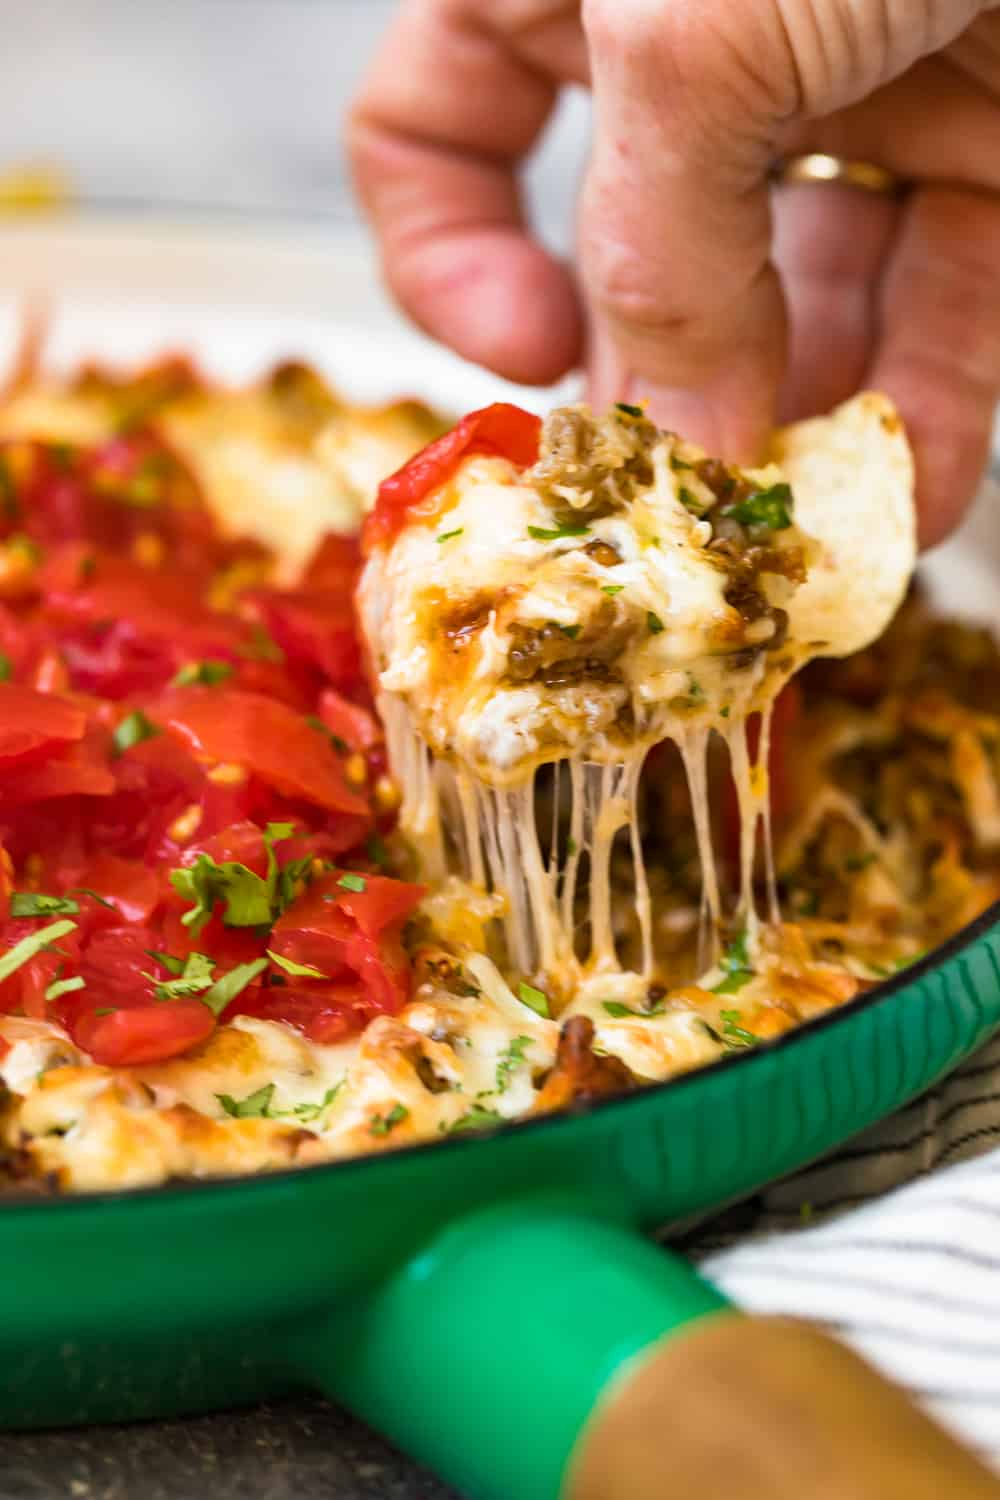 chip in queso fundido dip